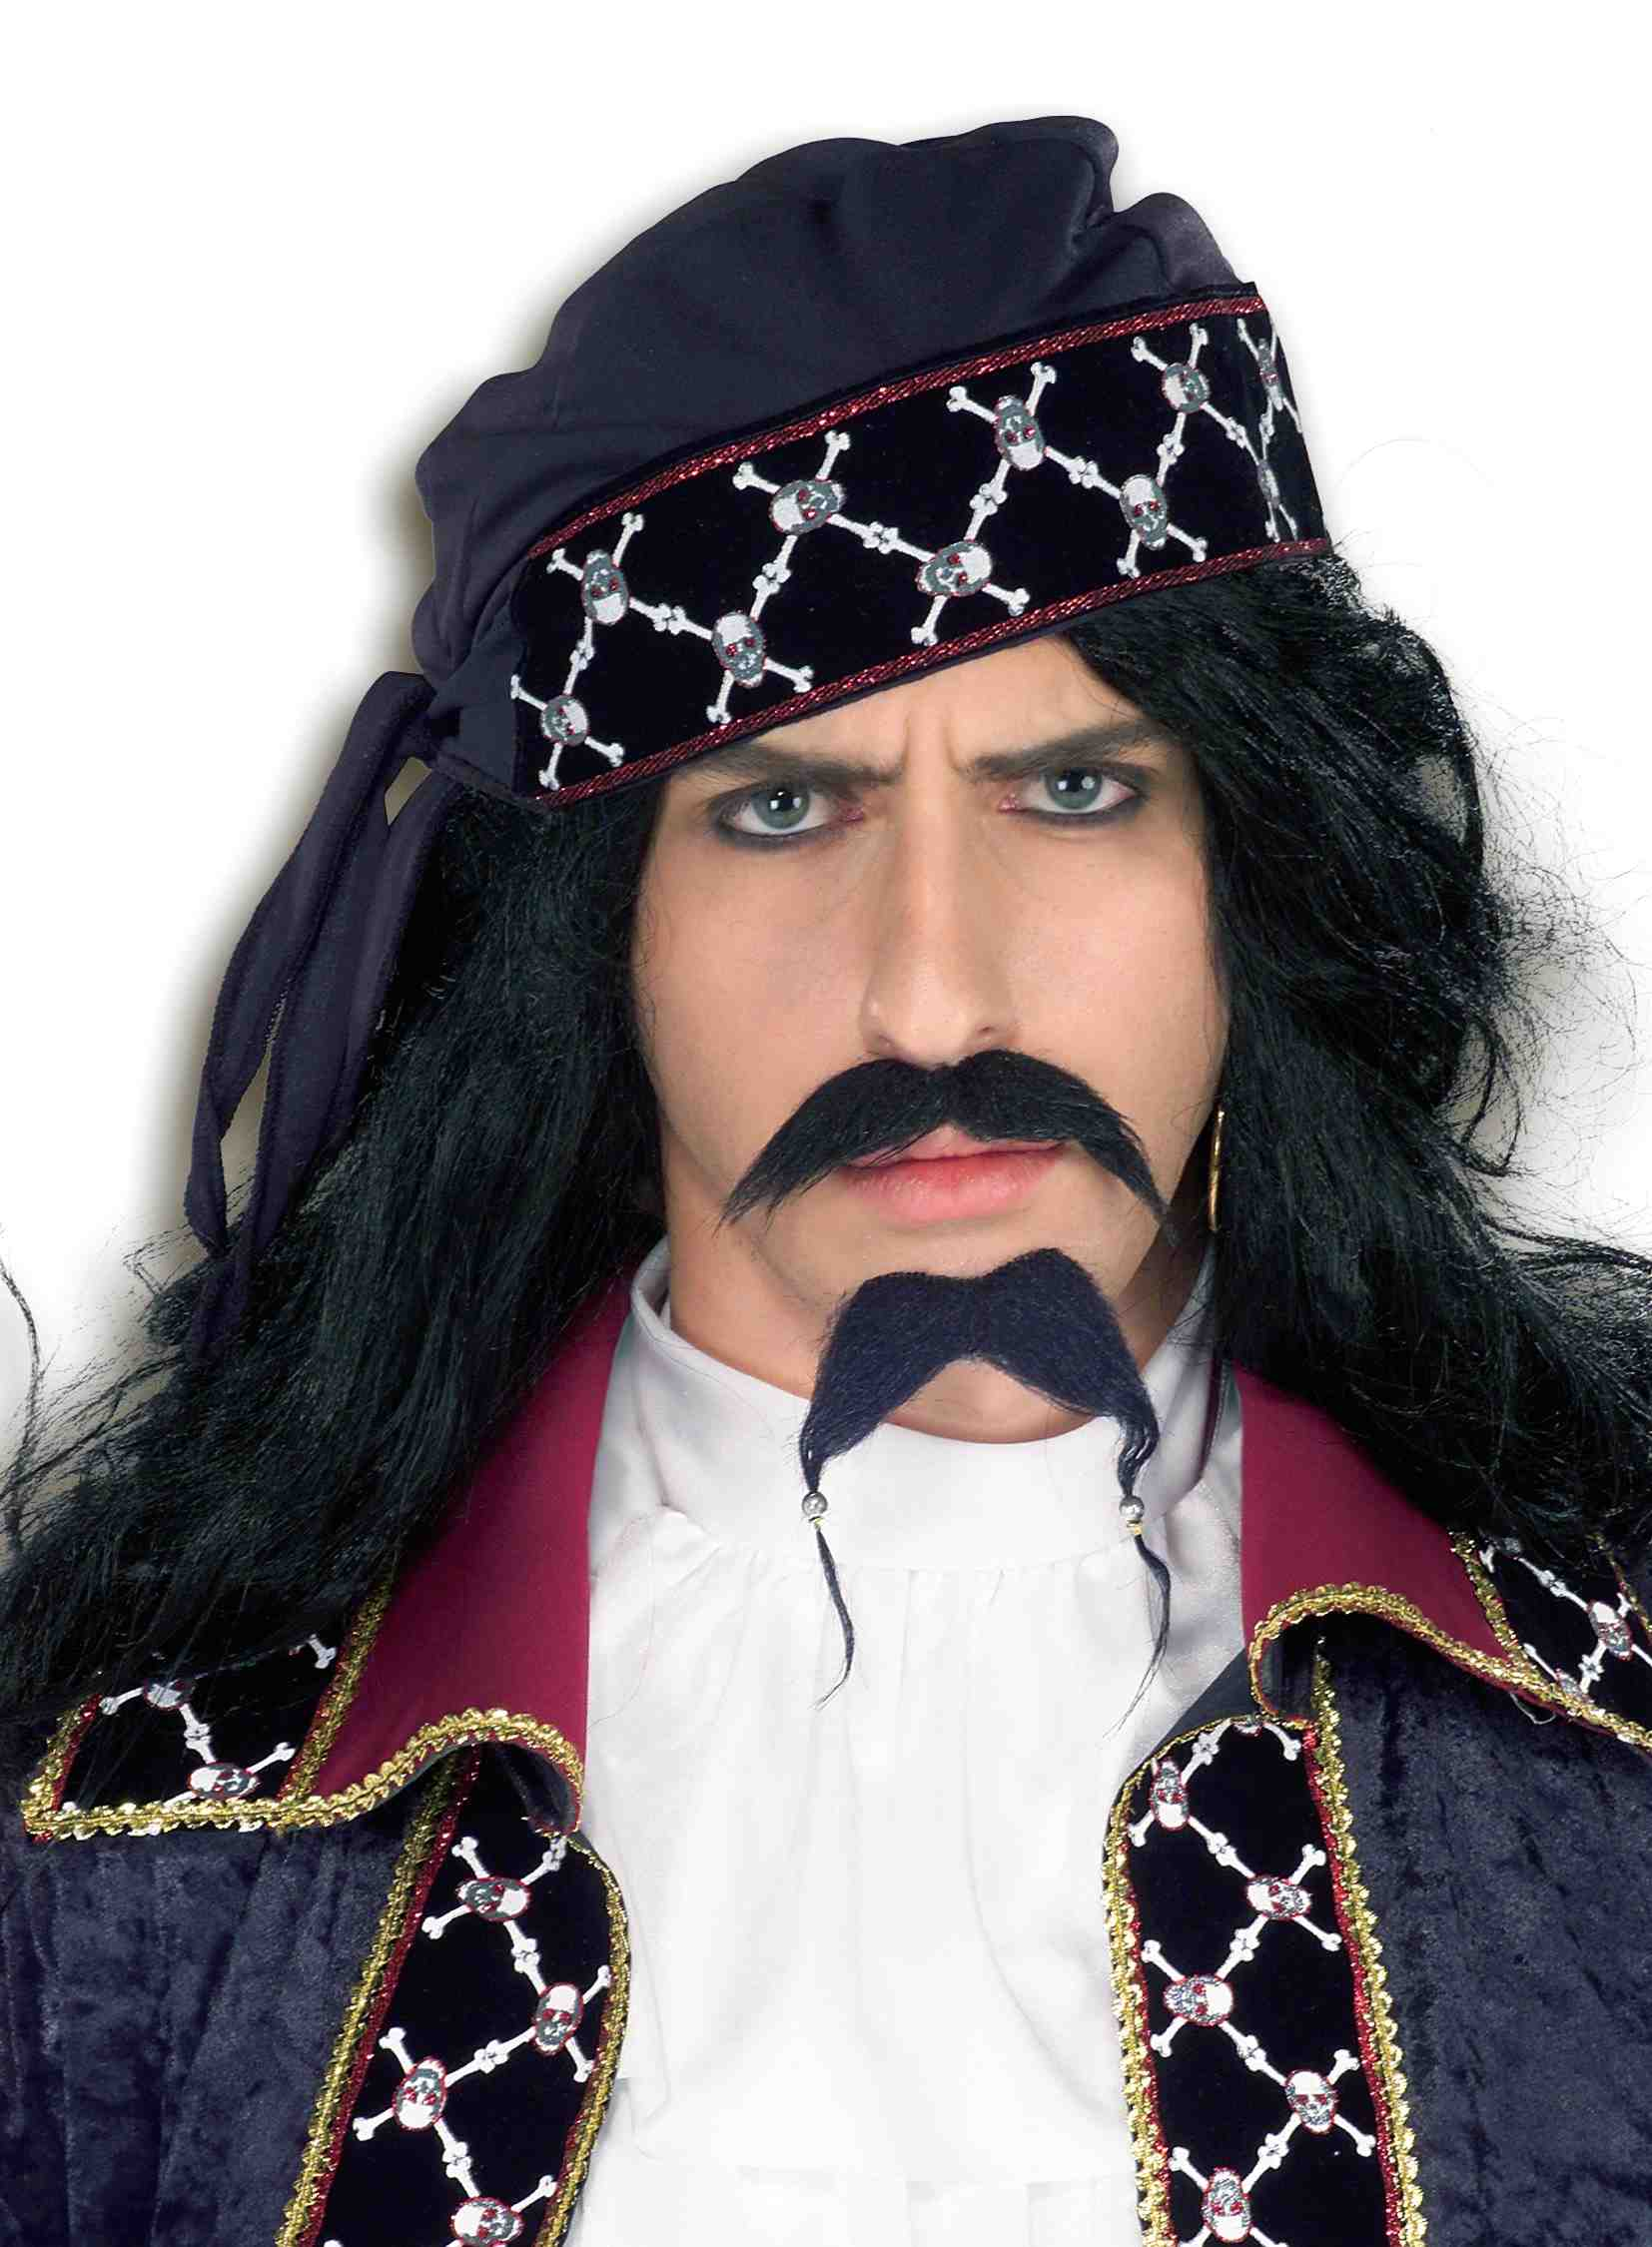 d92891f2a9f Pirate Beard   Moustache Black.  Costumania